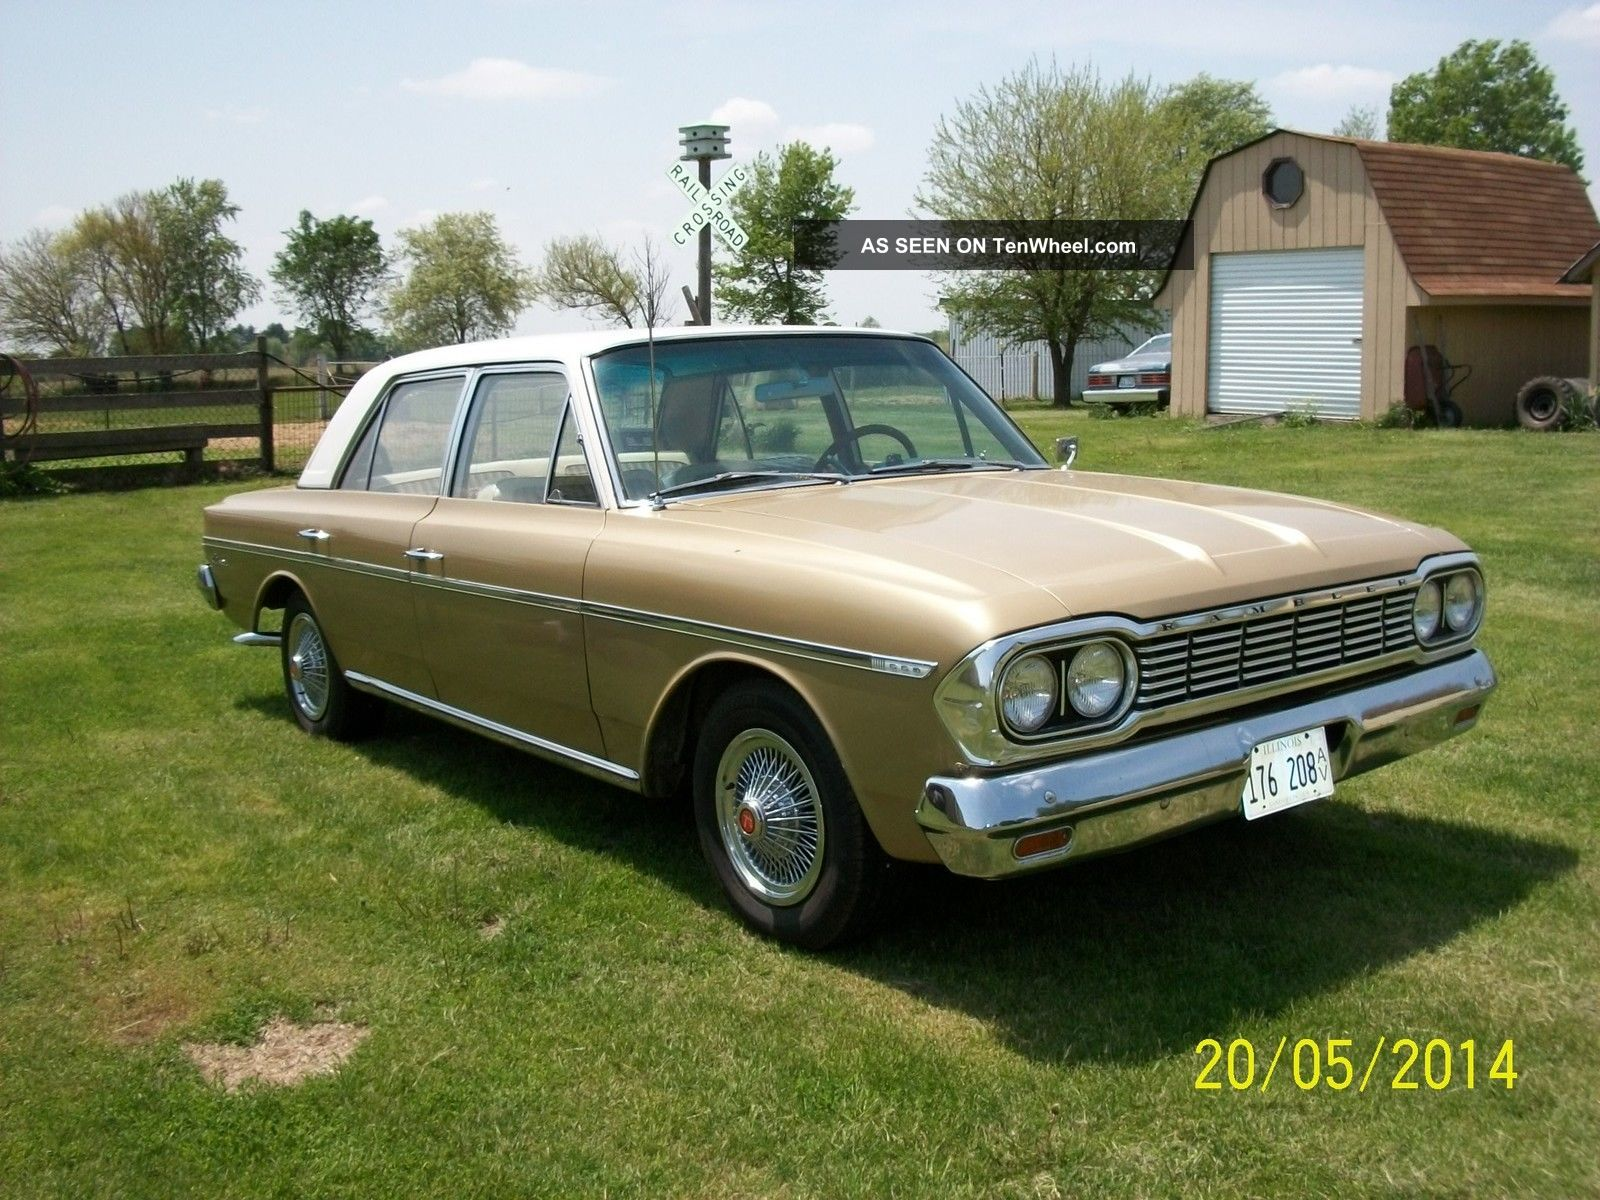 1964 Rambler Classic 660 AMC photo